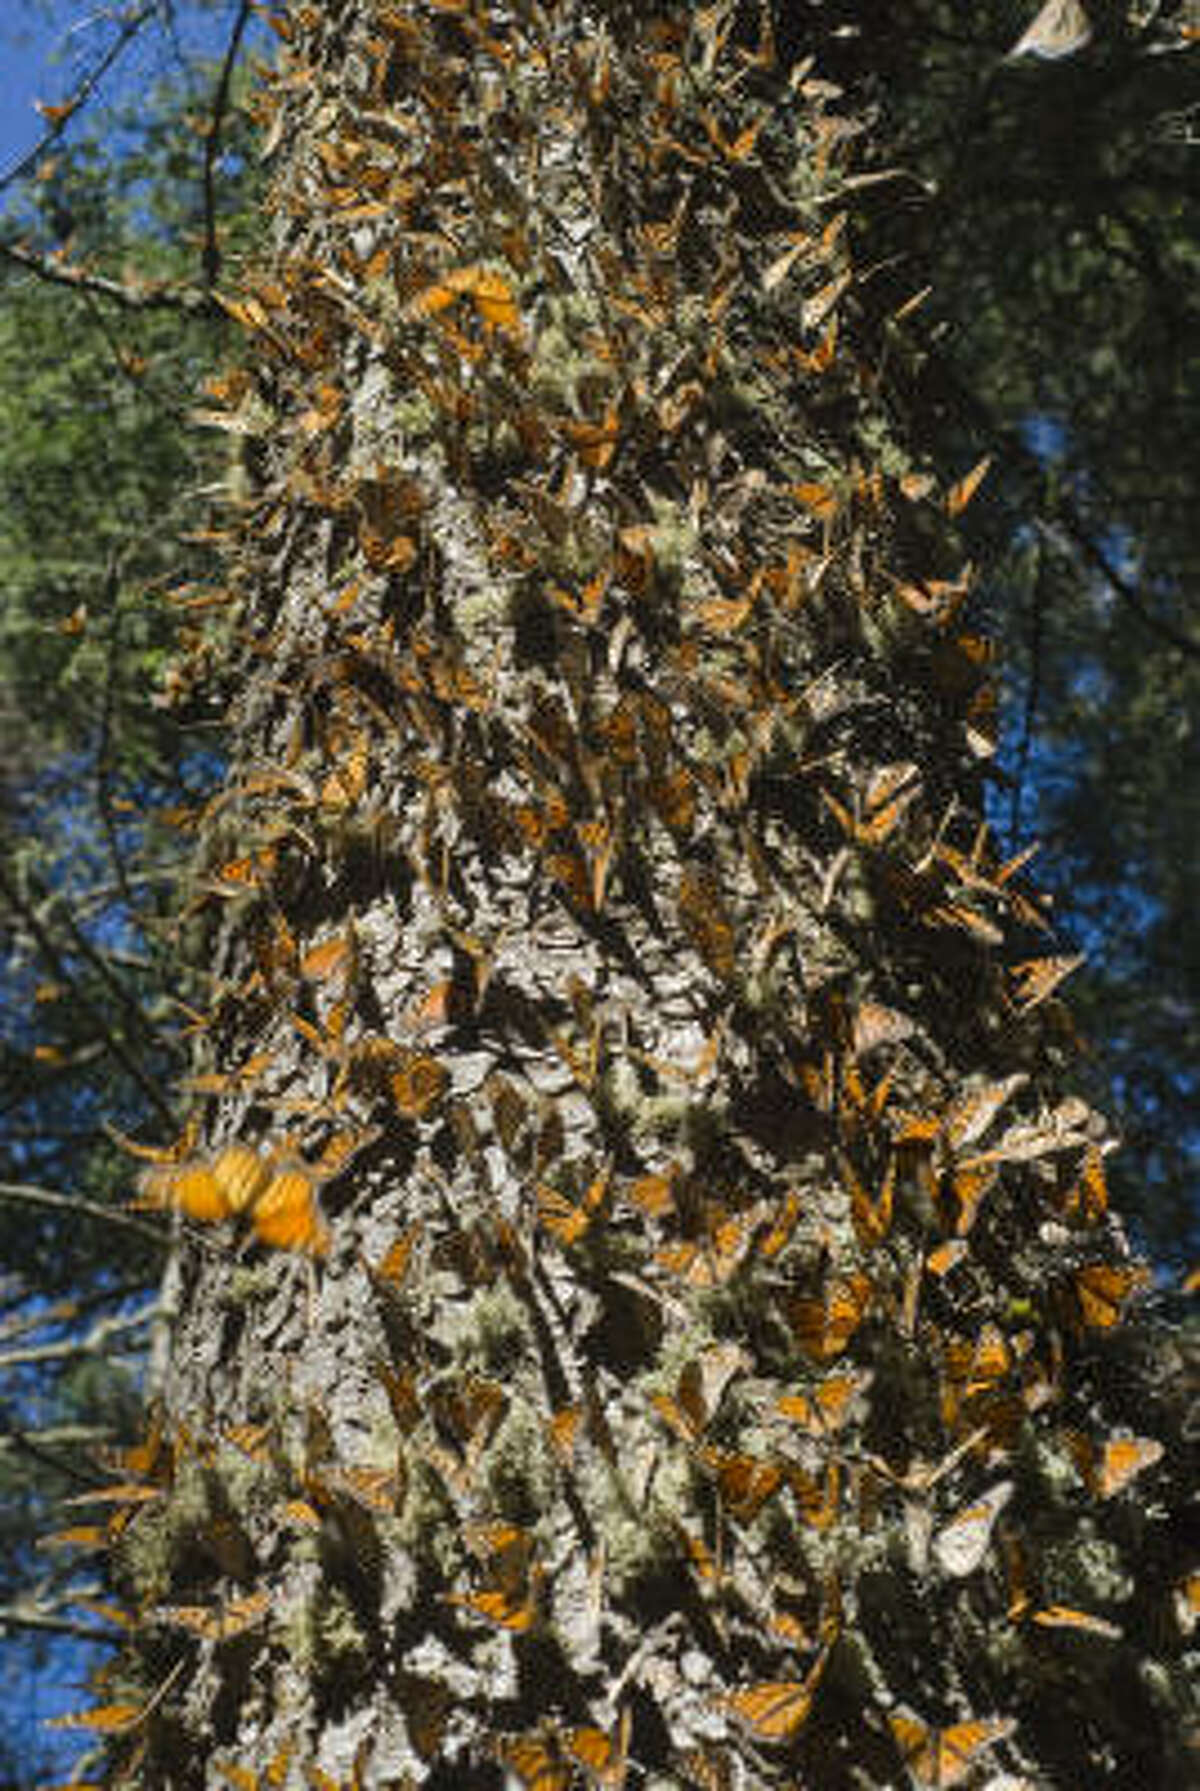 To escape the mortal winters of their native habitats in the United States and Canada, Monarch butterflies migrate annually to the Sierra Madre mountains of western Mexico, a journey of some 2500 to 4000 miles.